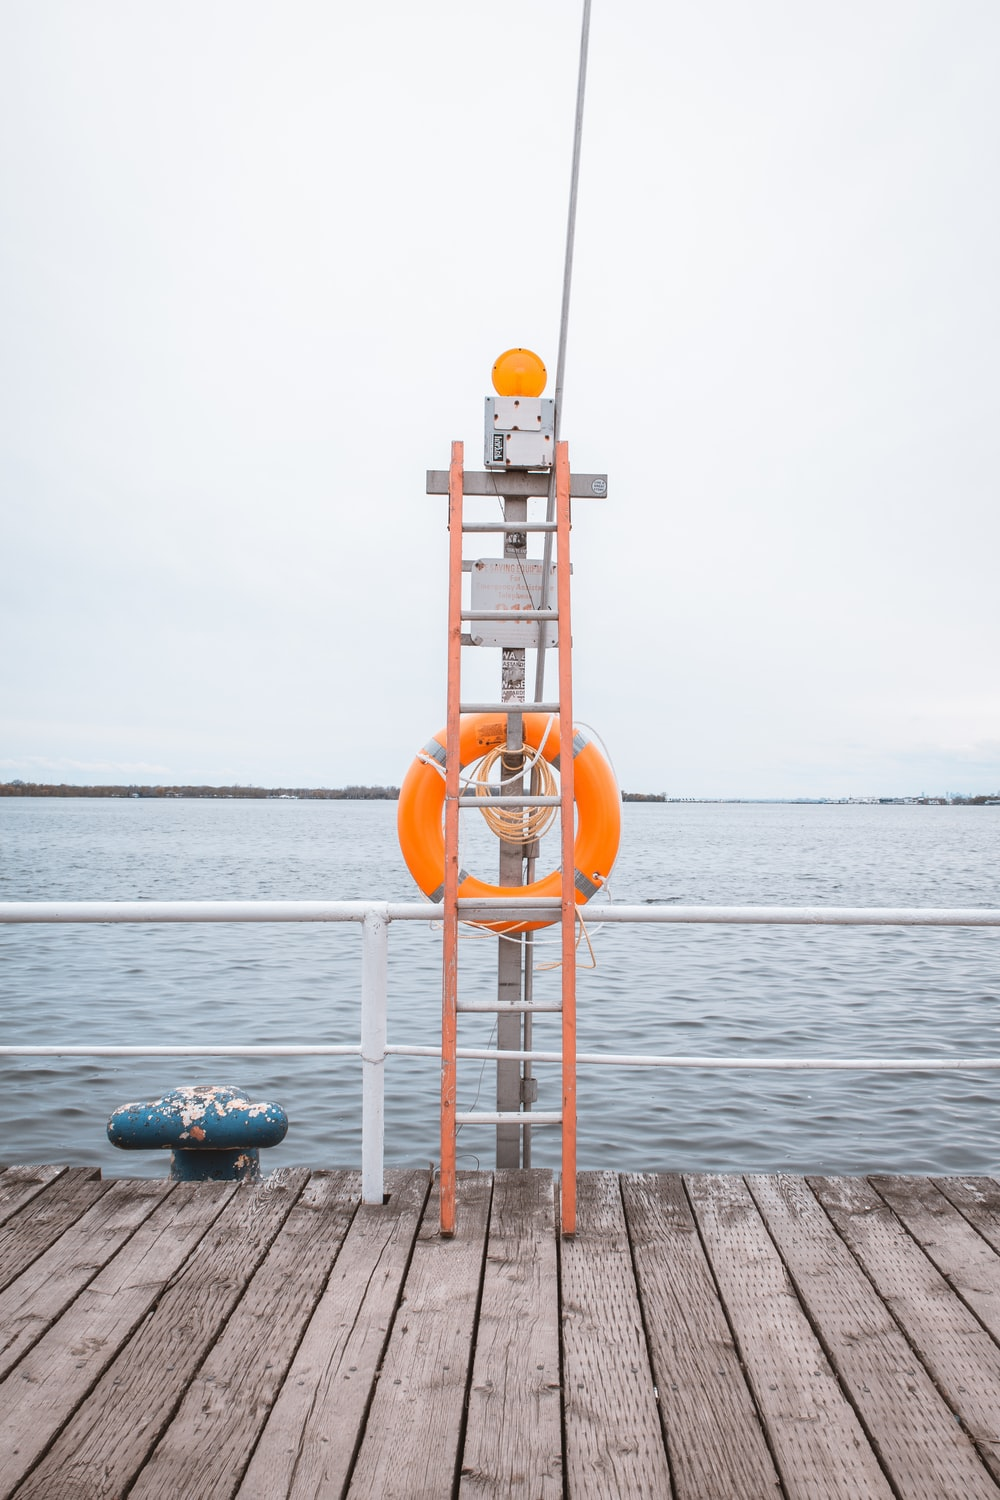 orange and white lifeguard tower near body of water during daytime